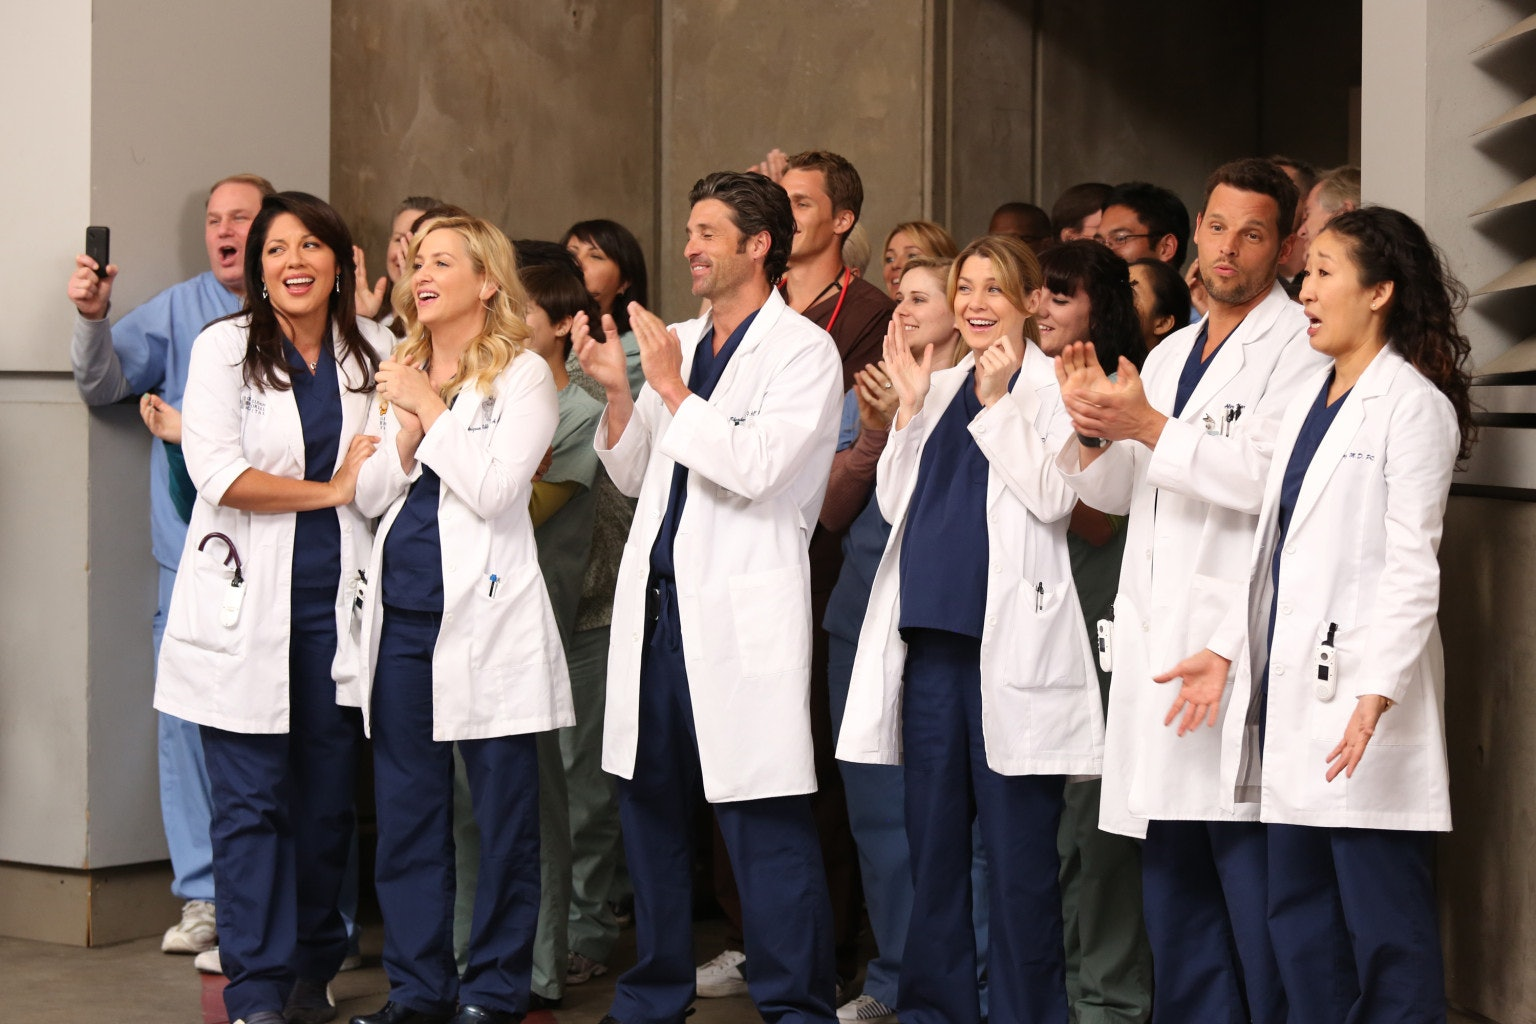 The Most Outdated Looks From Greys Anatomy Season 1 Prove Seattle